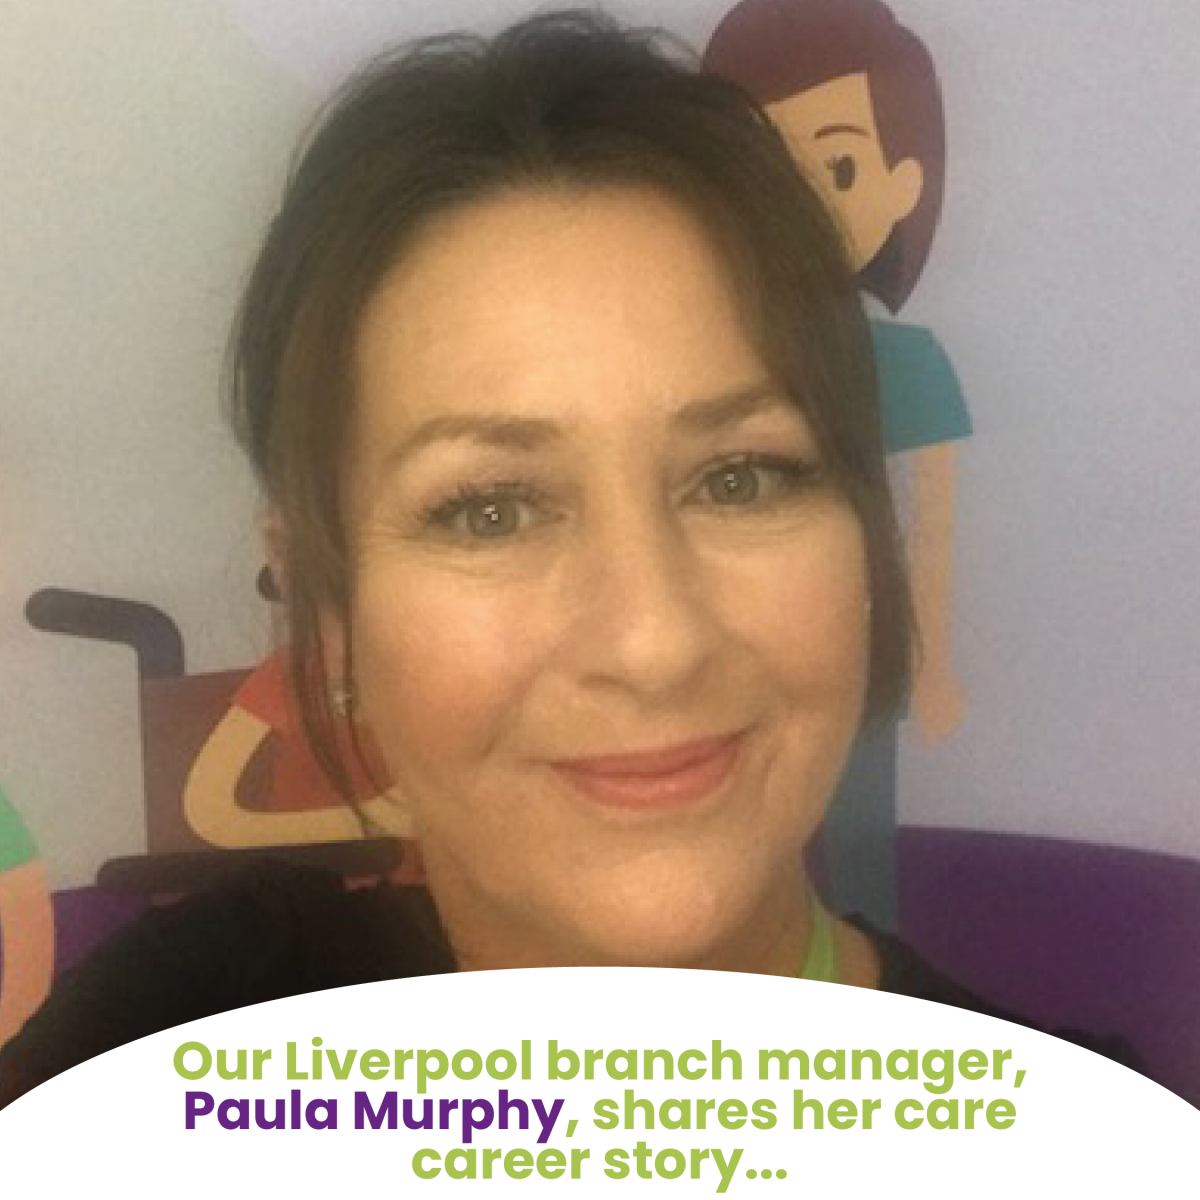 Our Liverpool Branch Manager, Paula Murphy, shares her care career story…